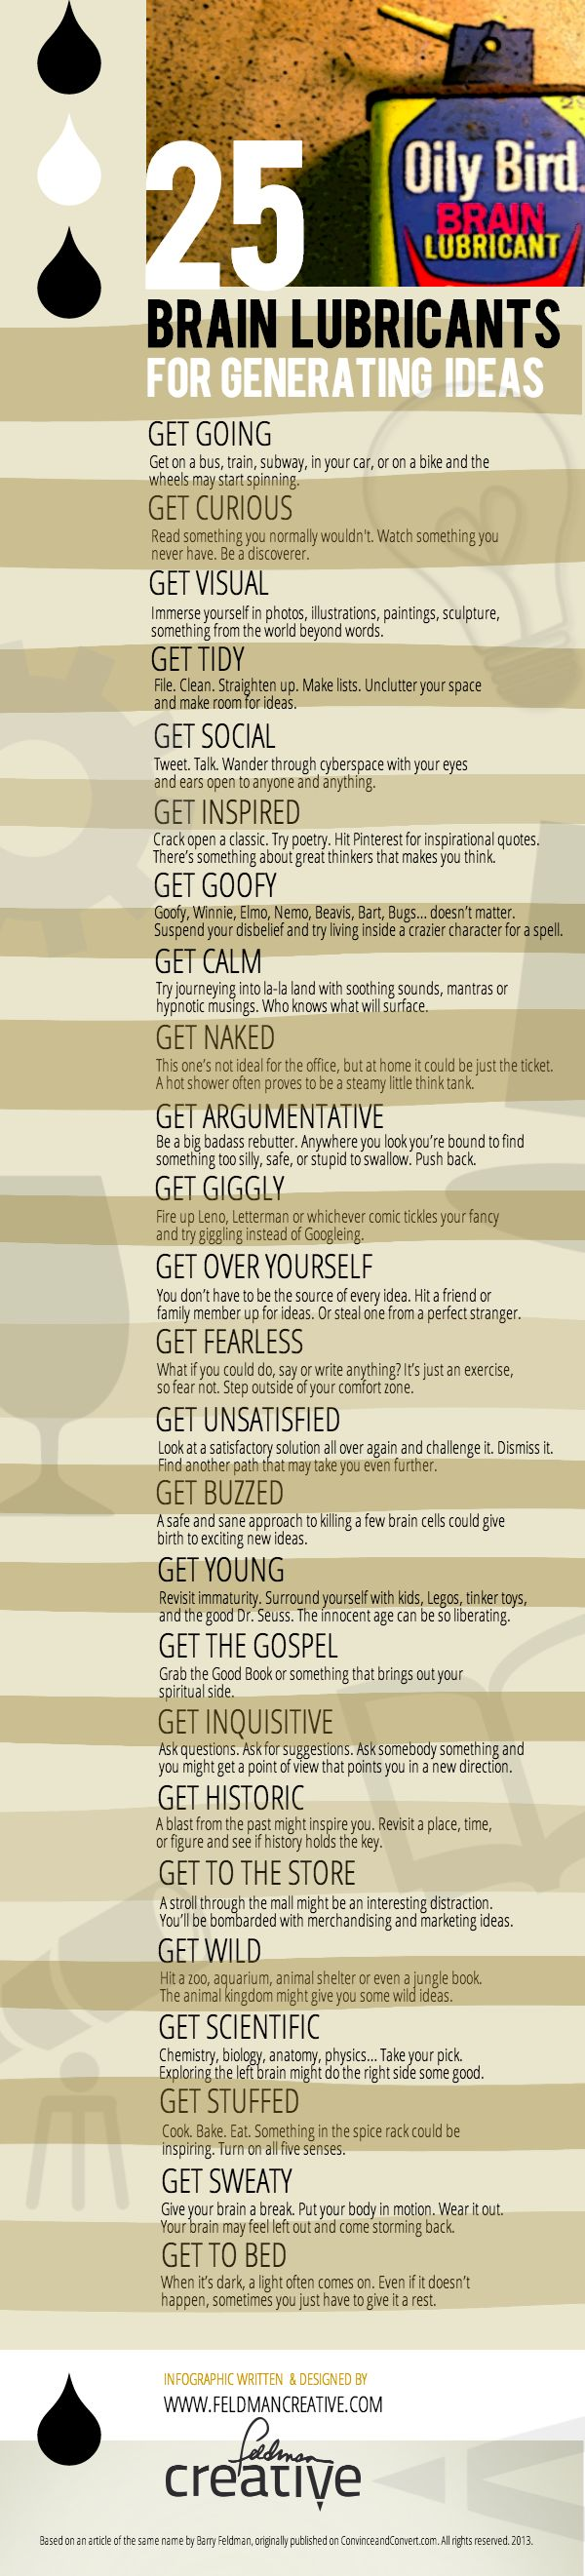 Infographic: 25 Brain Lubricants for Generating Ideas [INFOGRAPHIC]